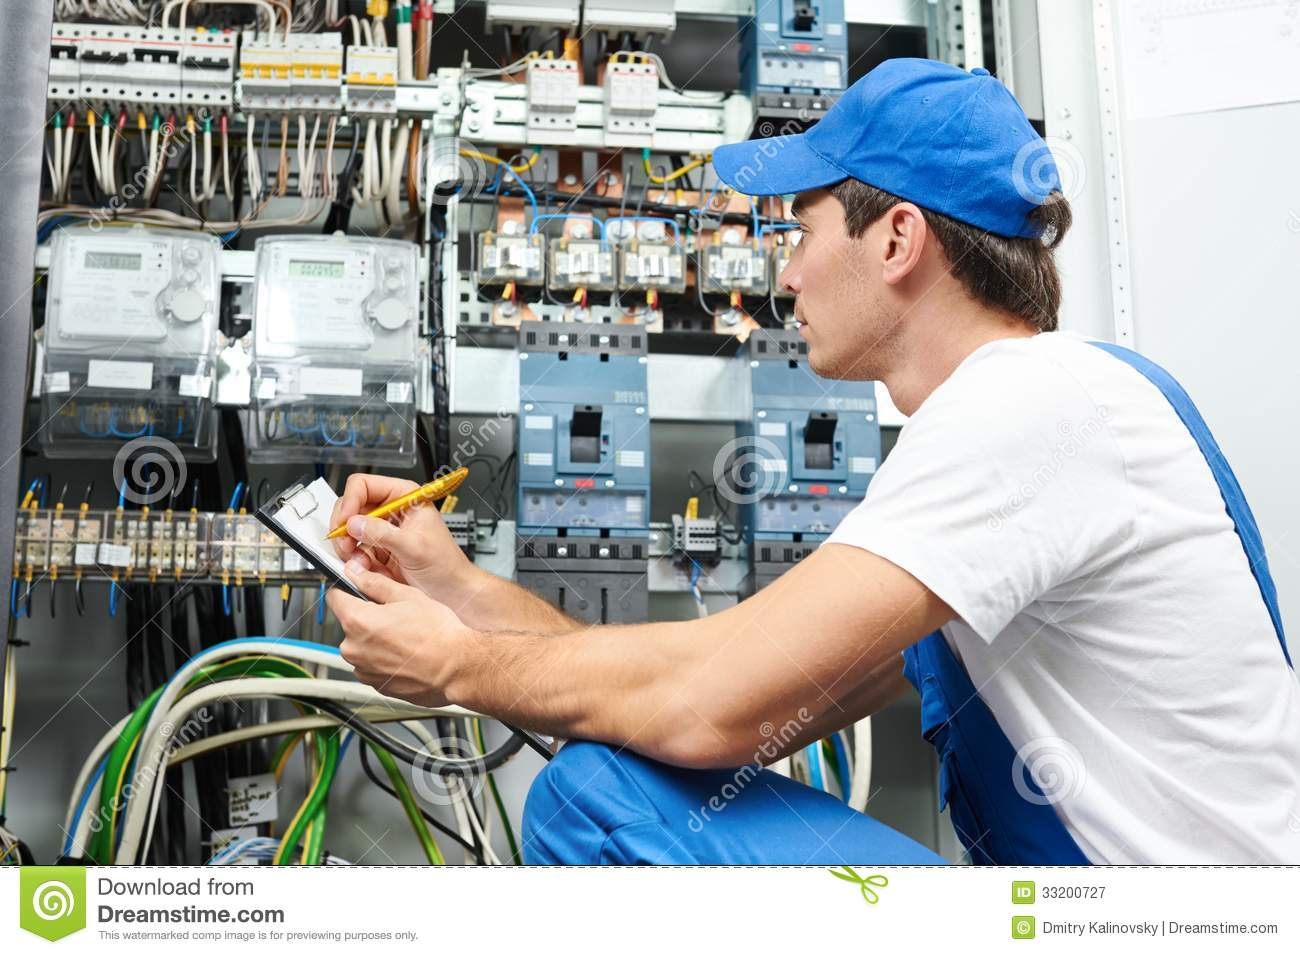 Electrician Worker Inspecting Young Adult Builder Engineer Electric Fuse Box Counter Equipment Distribution 33200727